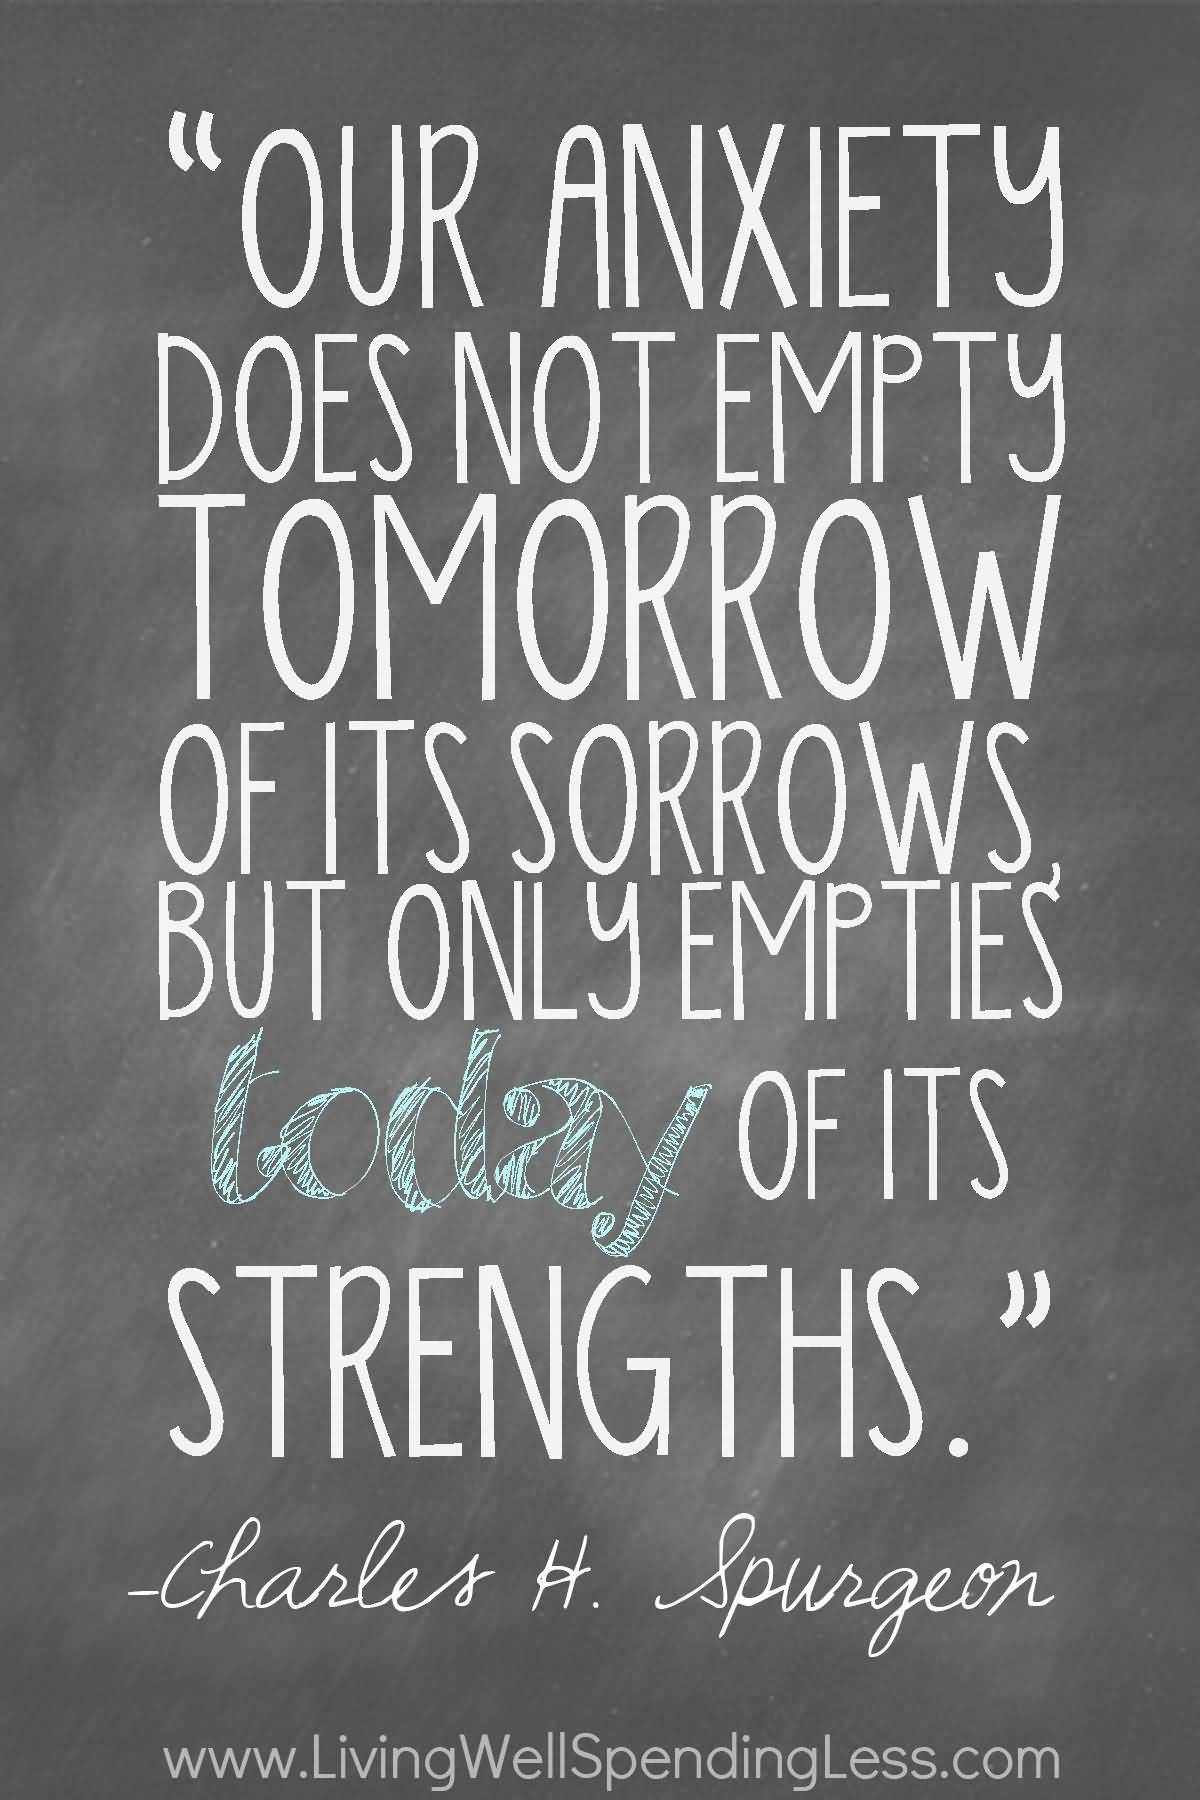 Stress Quotes our anxiety does not empty tomorrow of its sorrows but only empties today of its strengths.